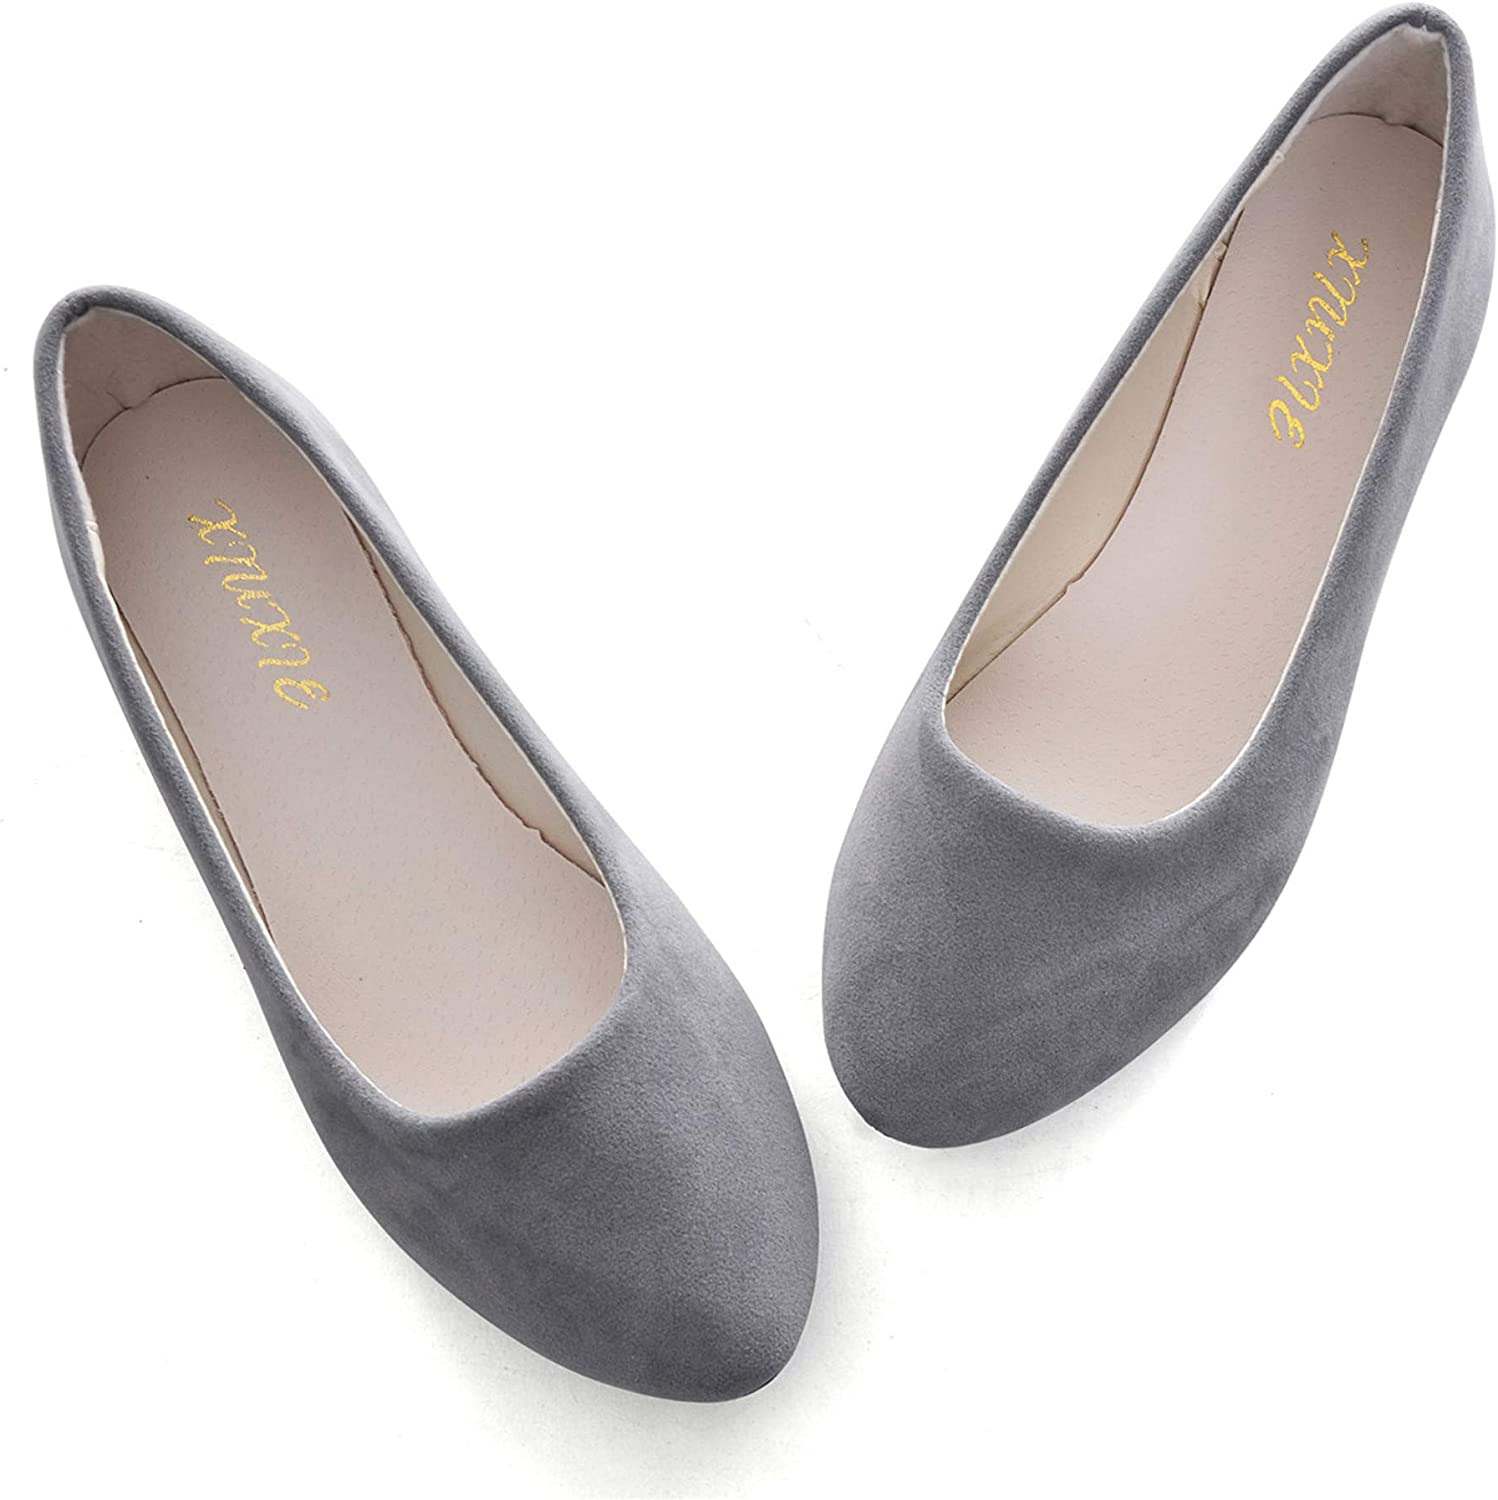 Henoo Women's Pointed Toe San Antonio Mall Slip On Flats Bombing new work Candy Suede Colors Soft